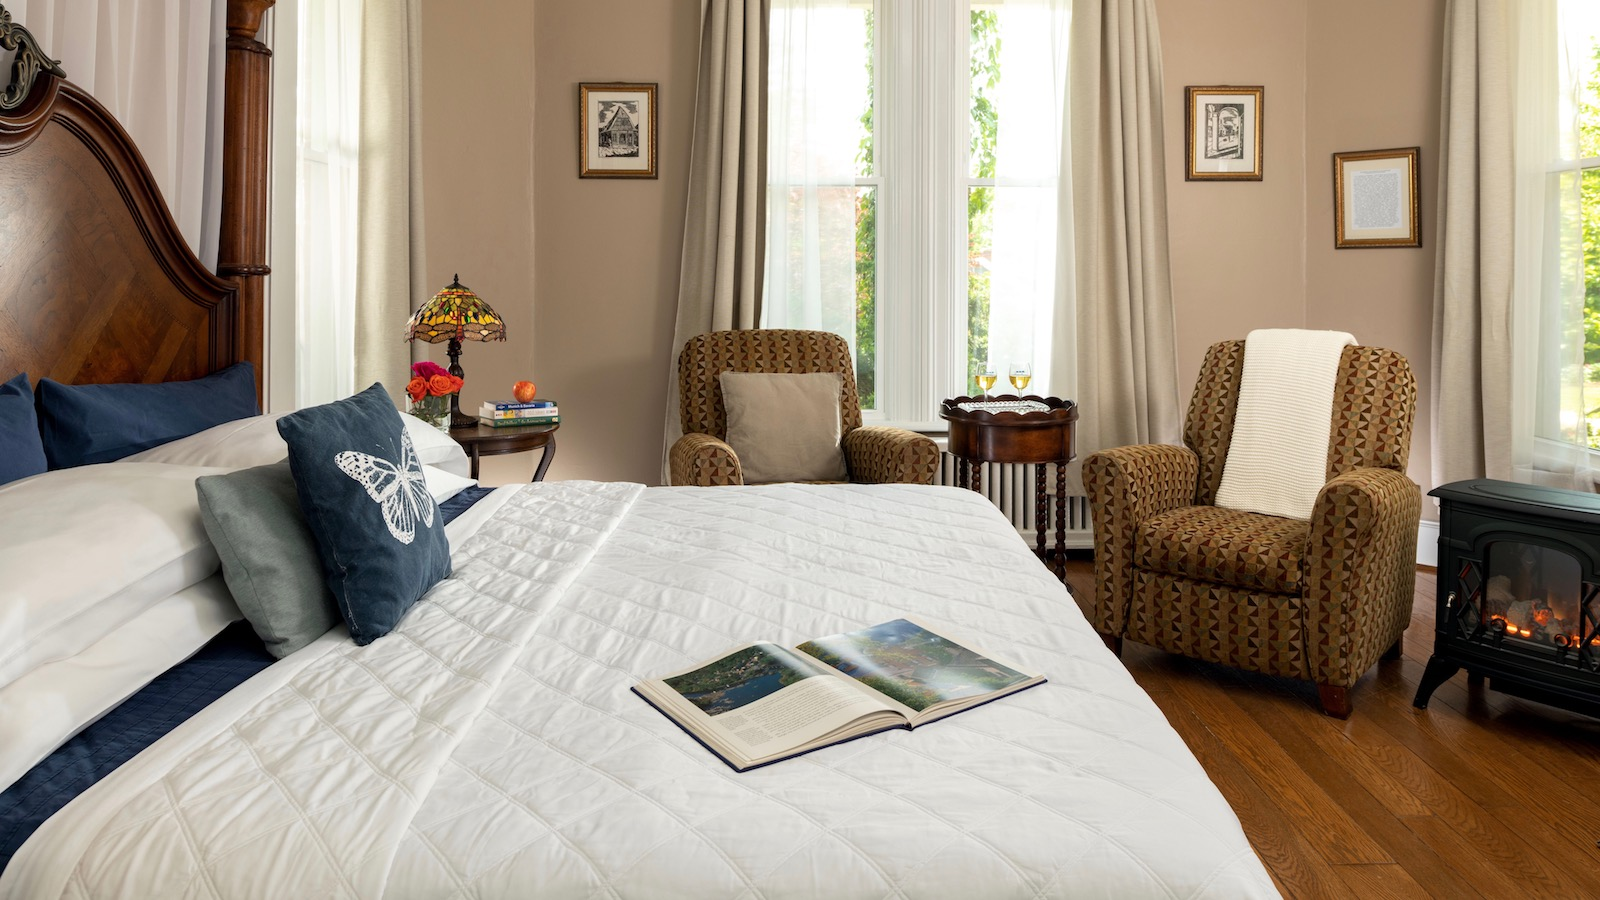 Sleep in True European Comfort Get Details >>